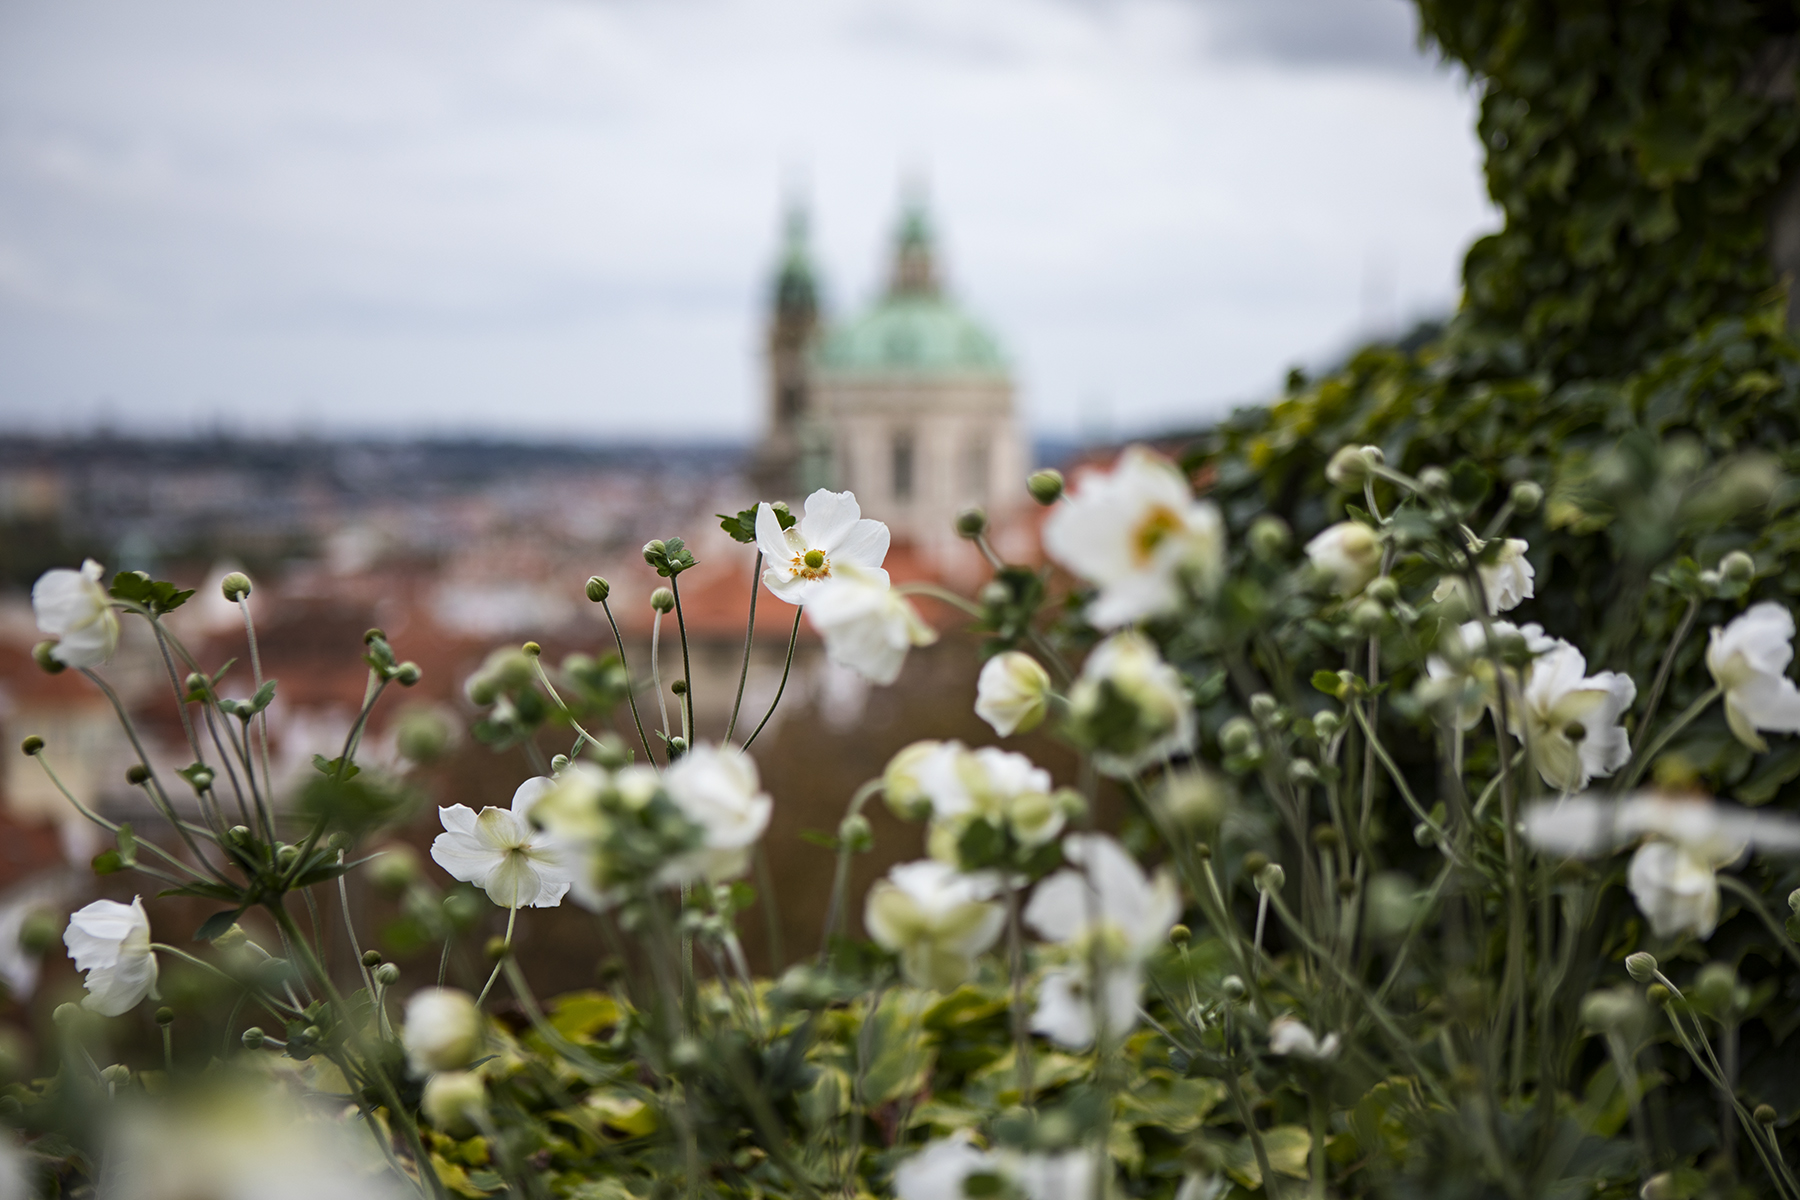 A view from the gardens of Prague Castle.